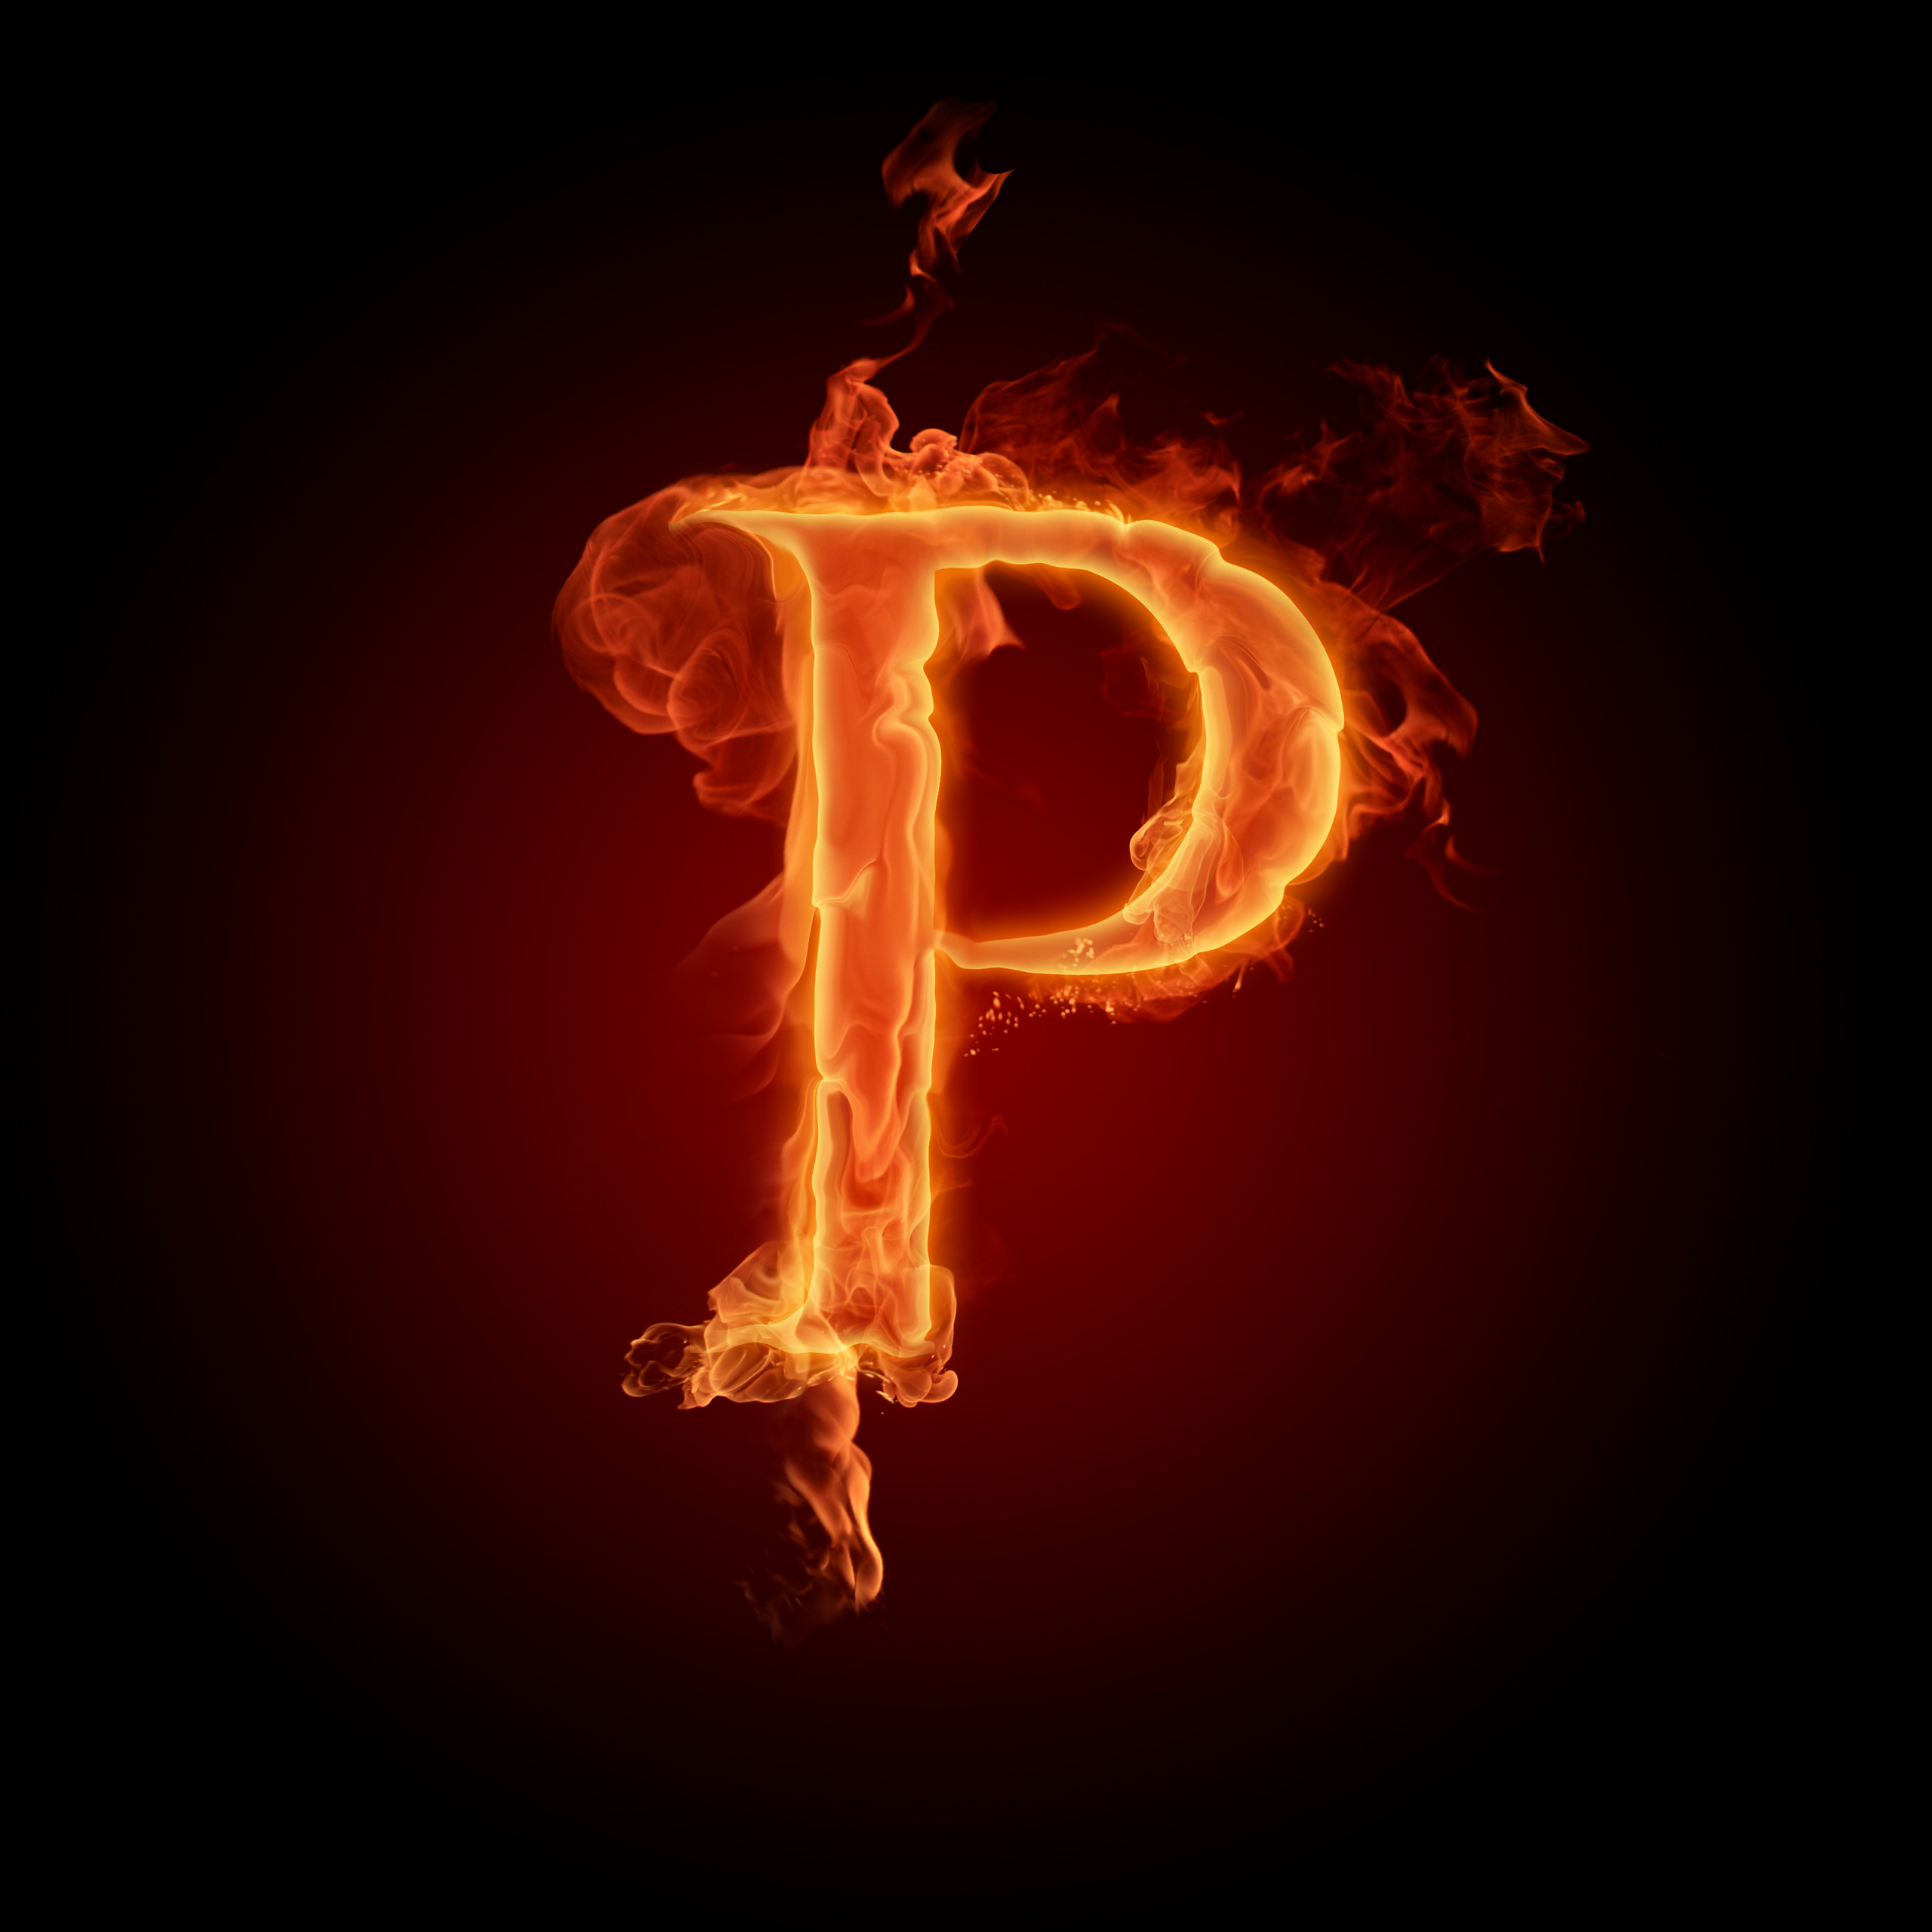 High Quality The Letter P Images The Letter P HD Wallpaper And Background Photos  P & L Statement